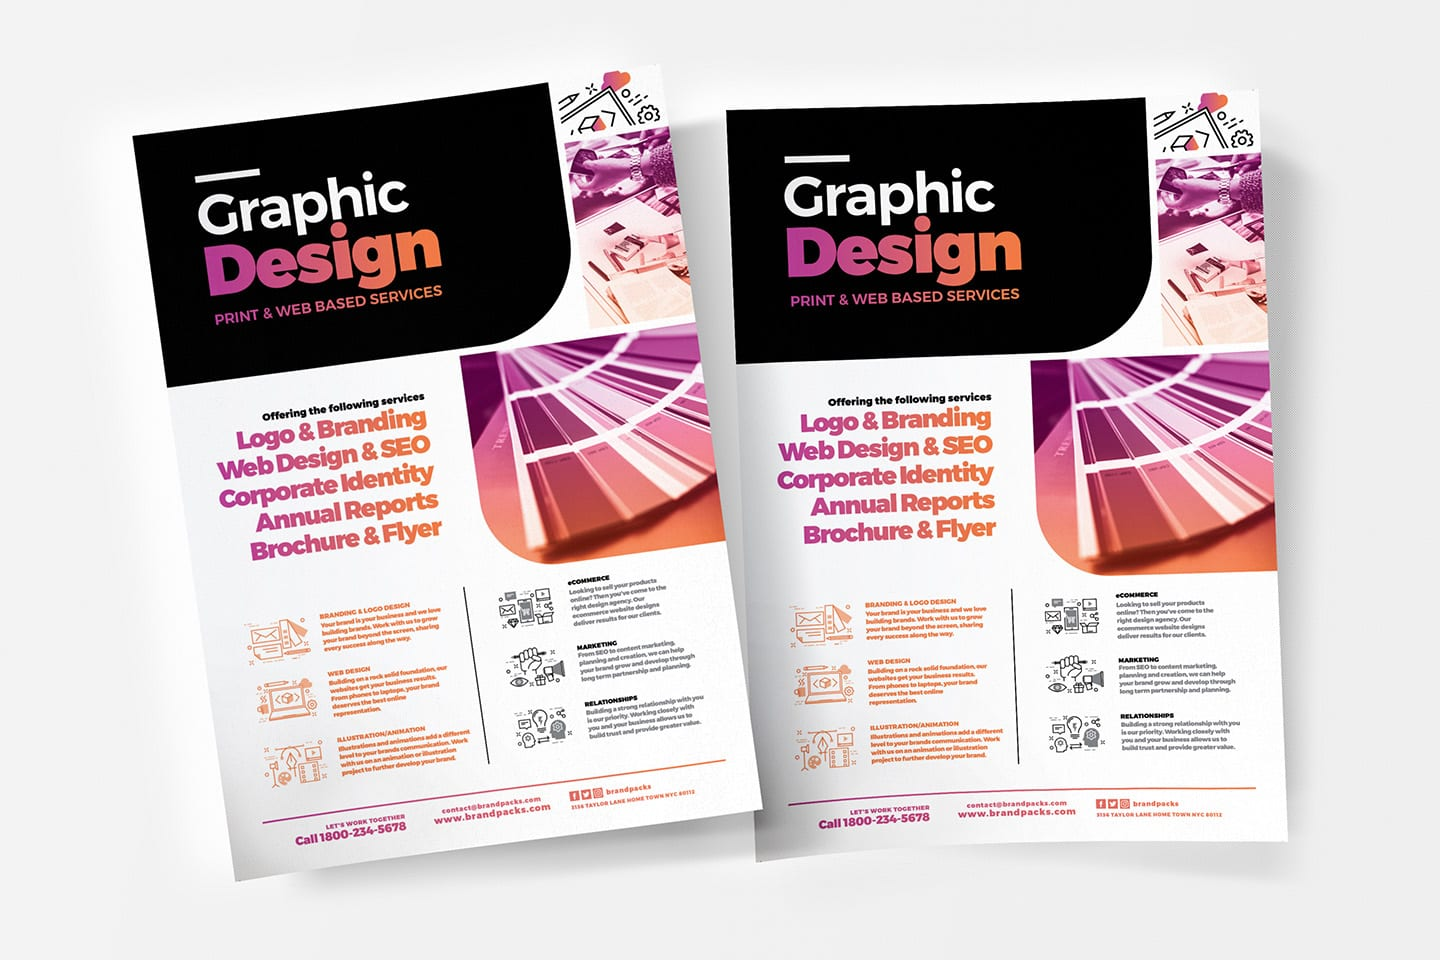 Graphic Design Agency Poster Template v4 - BrandPacks